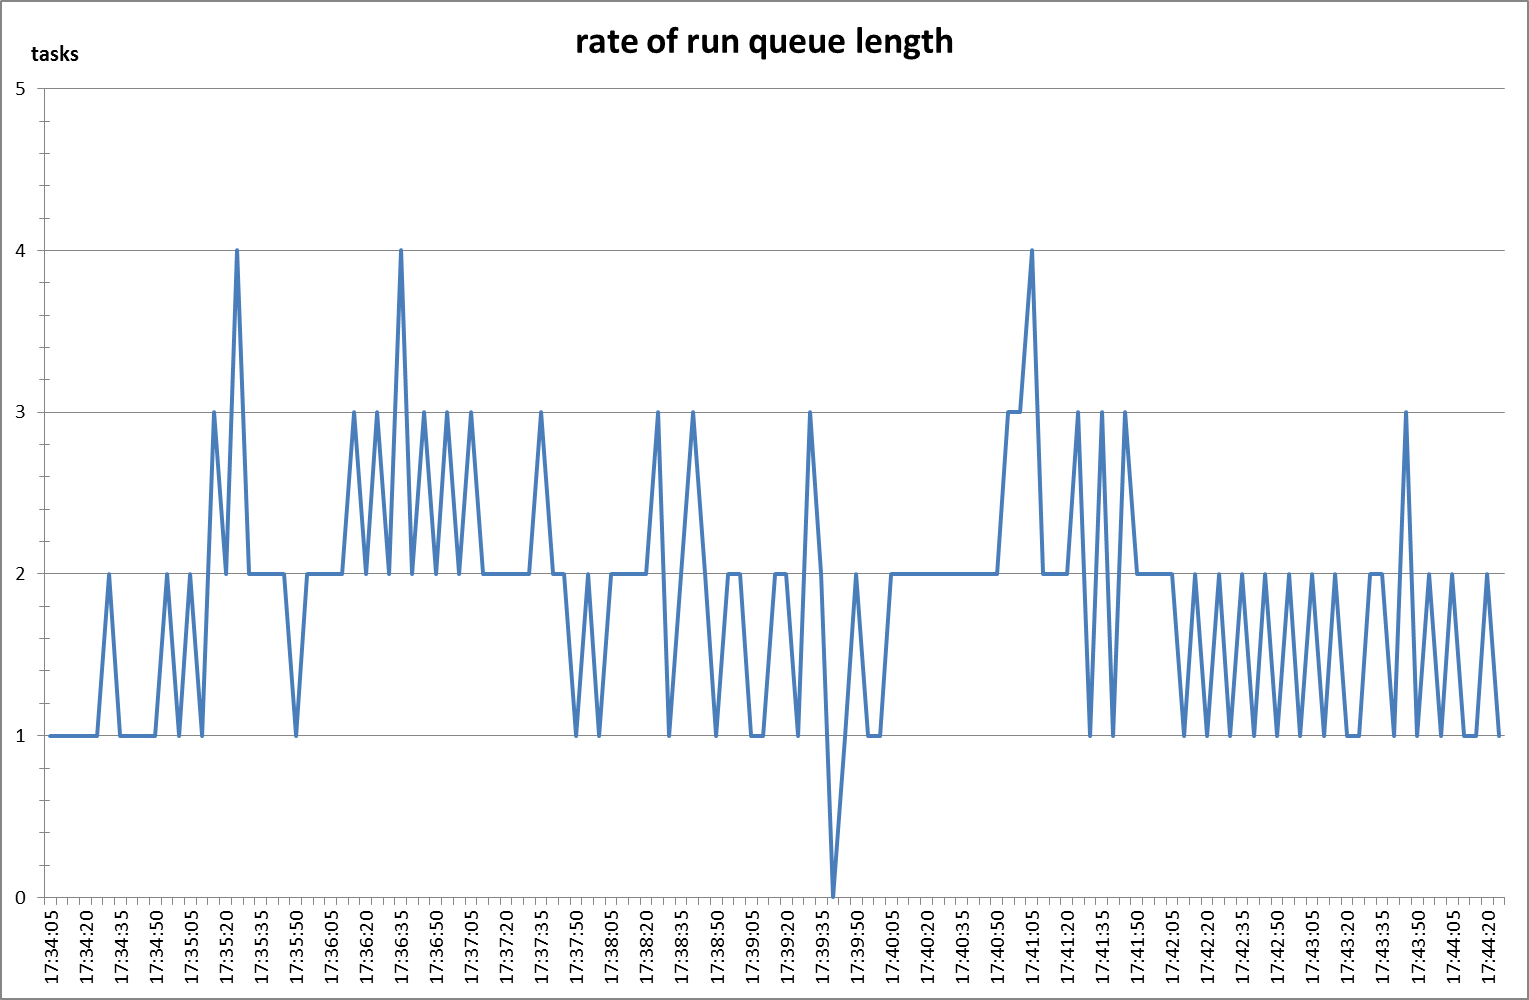 Rate of run queue length